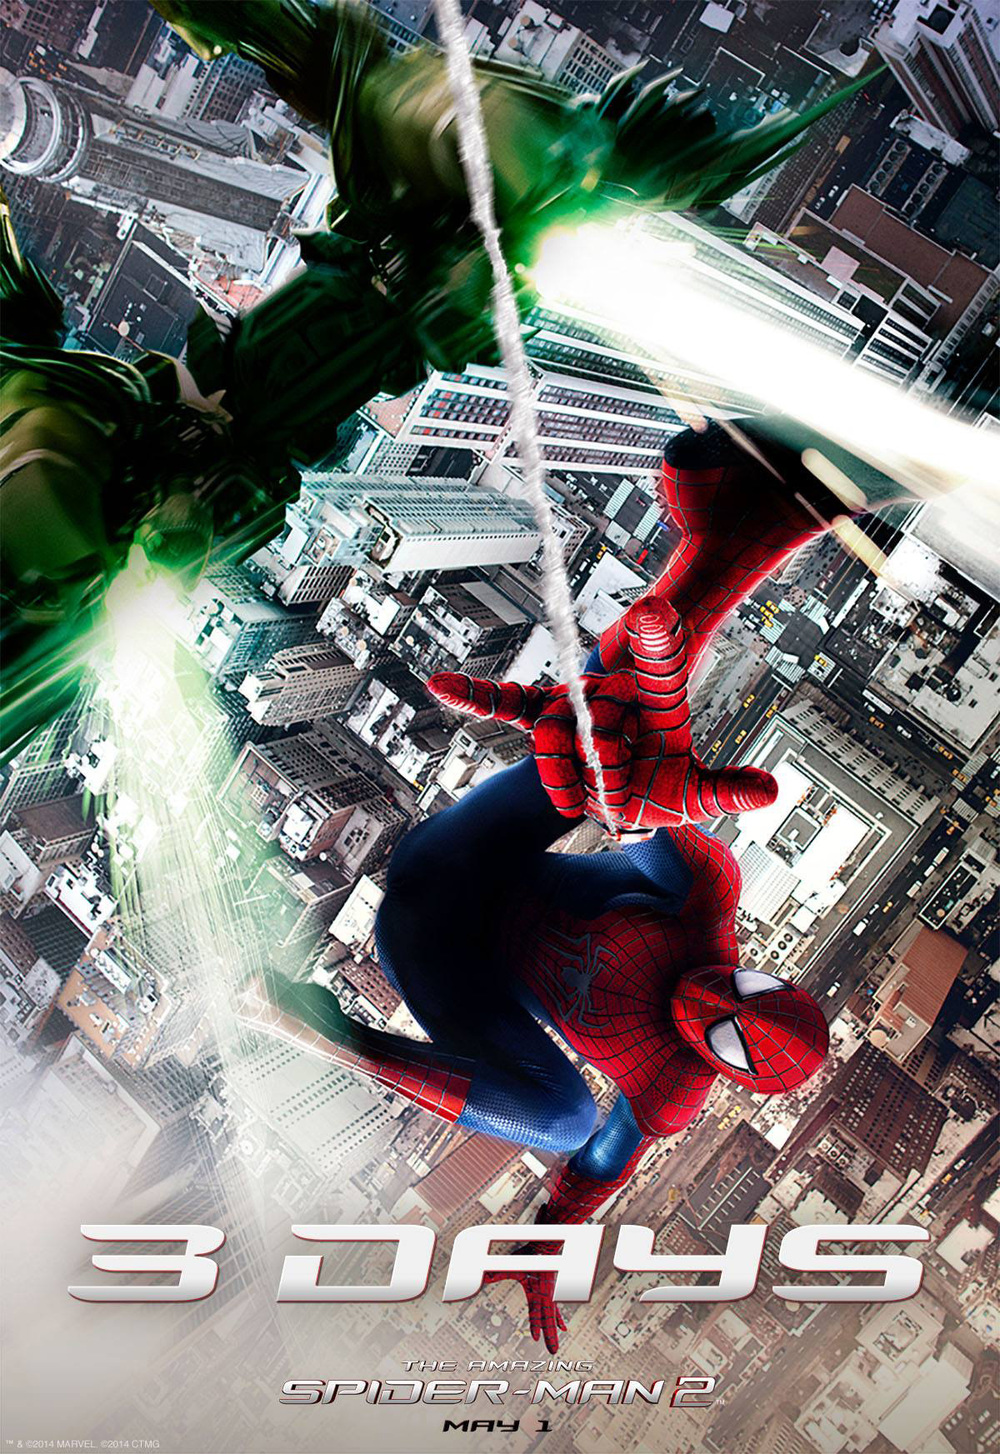 Movie Photos The Amazing Spider-Man 2 about a year ago by Joey PaurThe Amazing Spiderman 2 Spiderman Vs Green Goblin